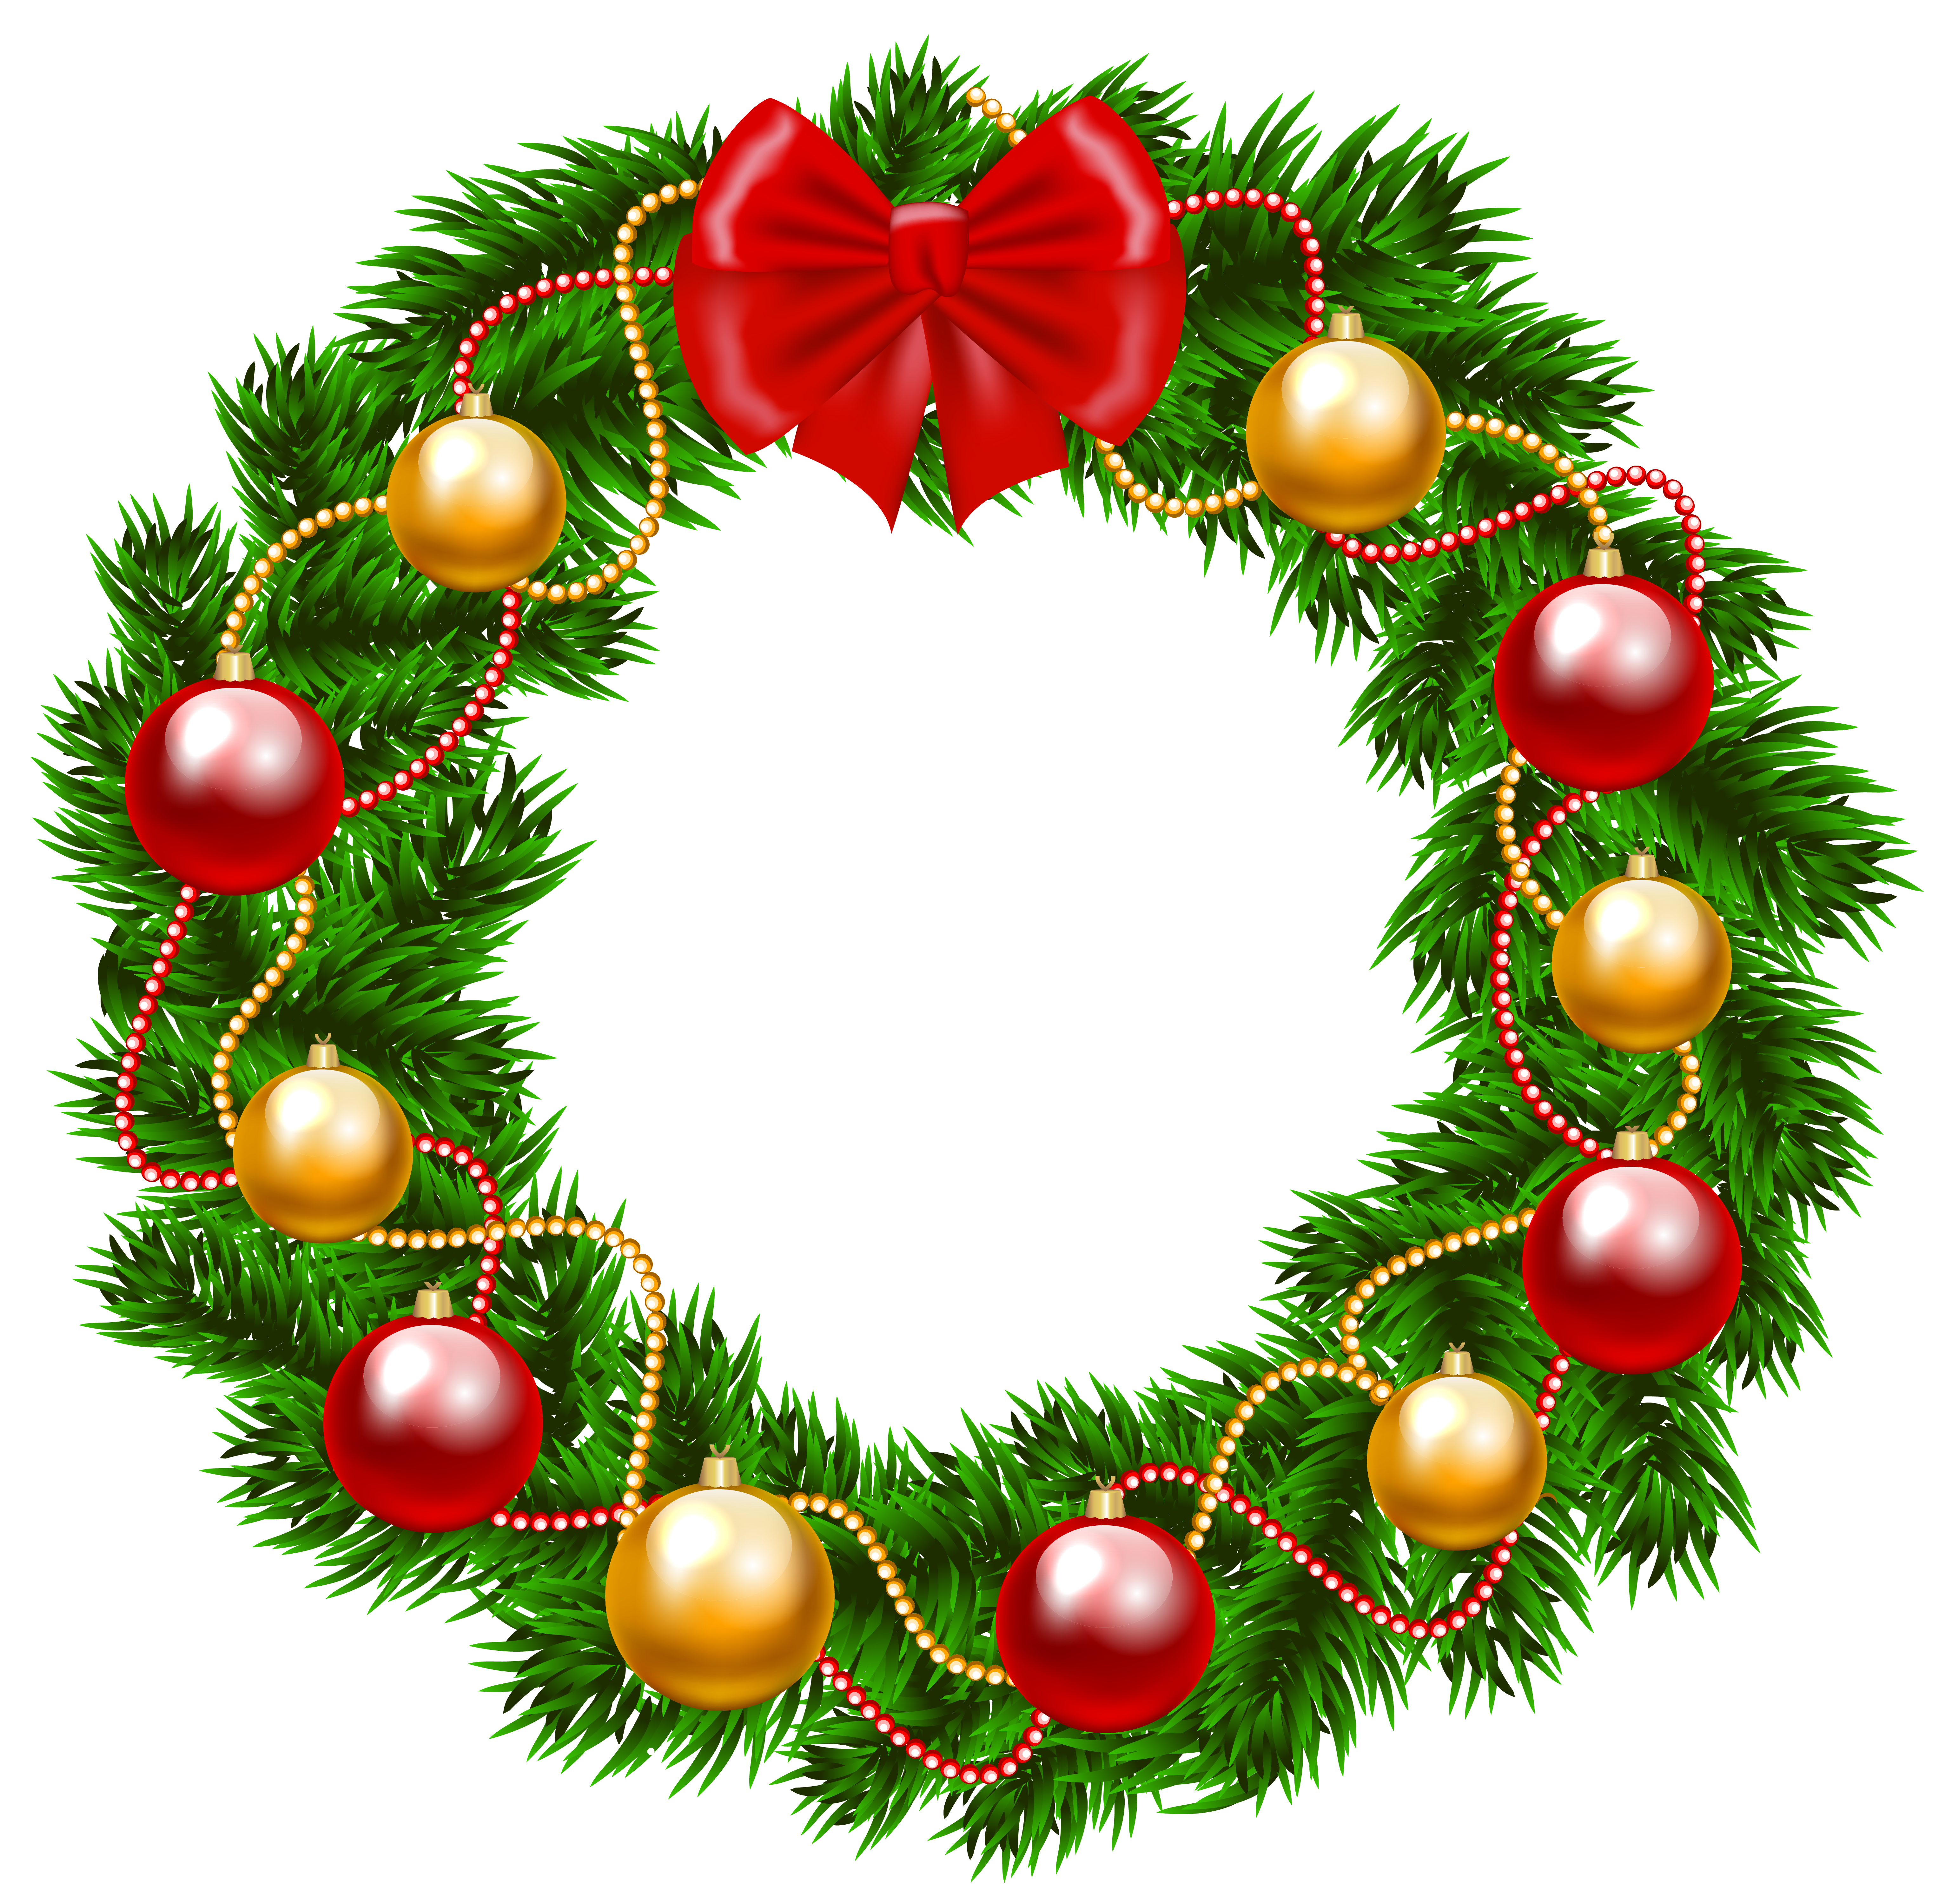 Xmas wreaths images clipart svg freeuse stock Free Christmas Wreath Cliparts, Download Free Clip Art, Free Clip ... svg freeuse stock